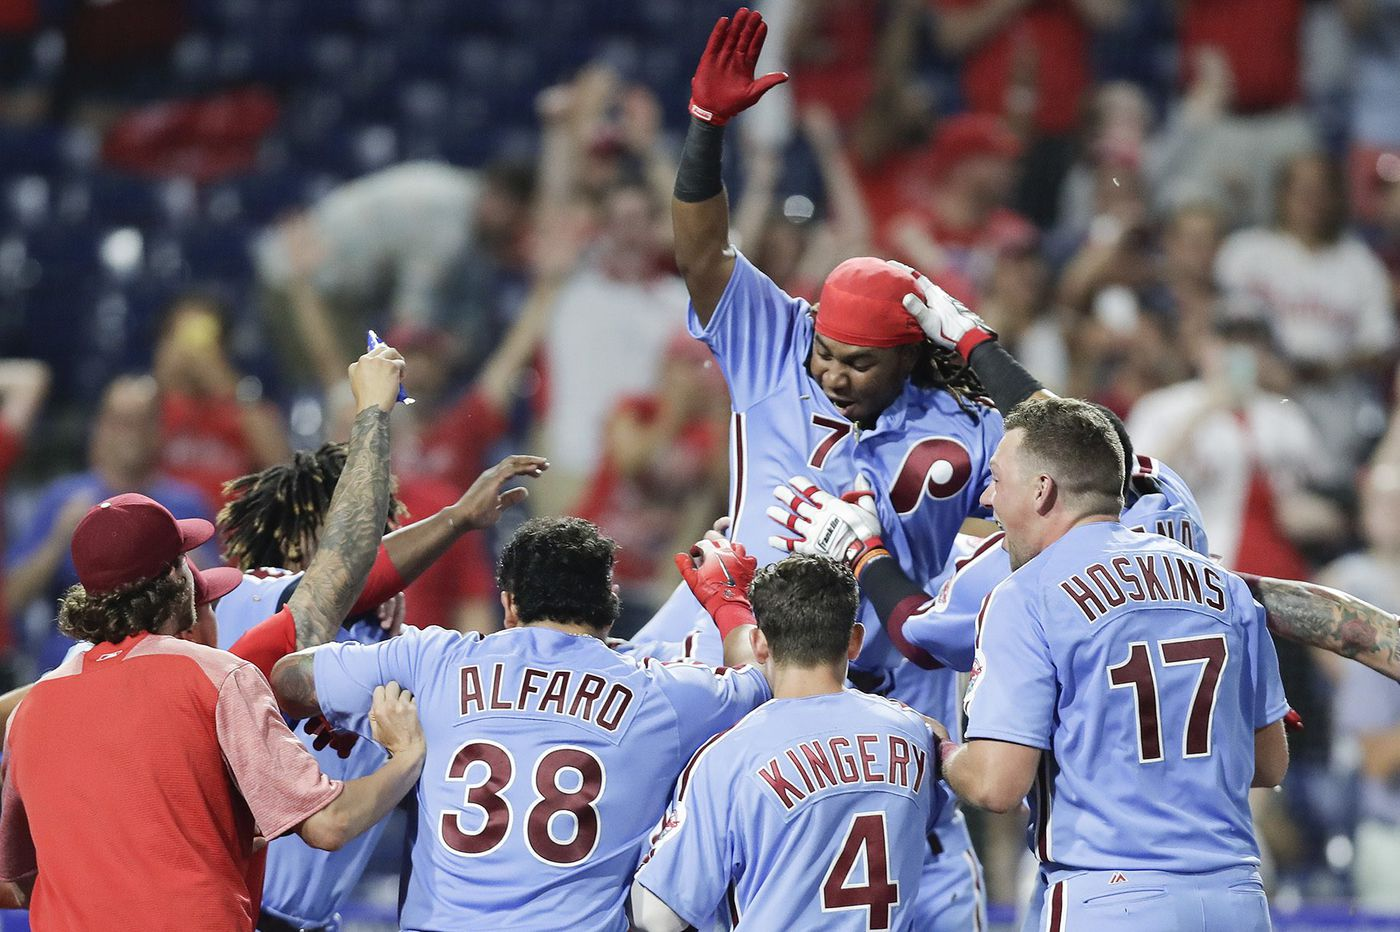 Can 2018 really equal 2008? All we know is the Phillies have a chance | David Murphy